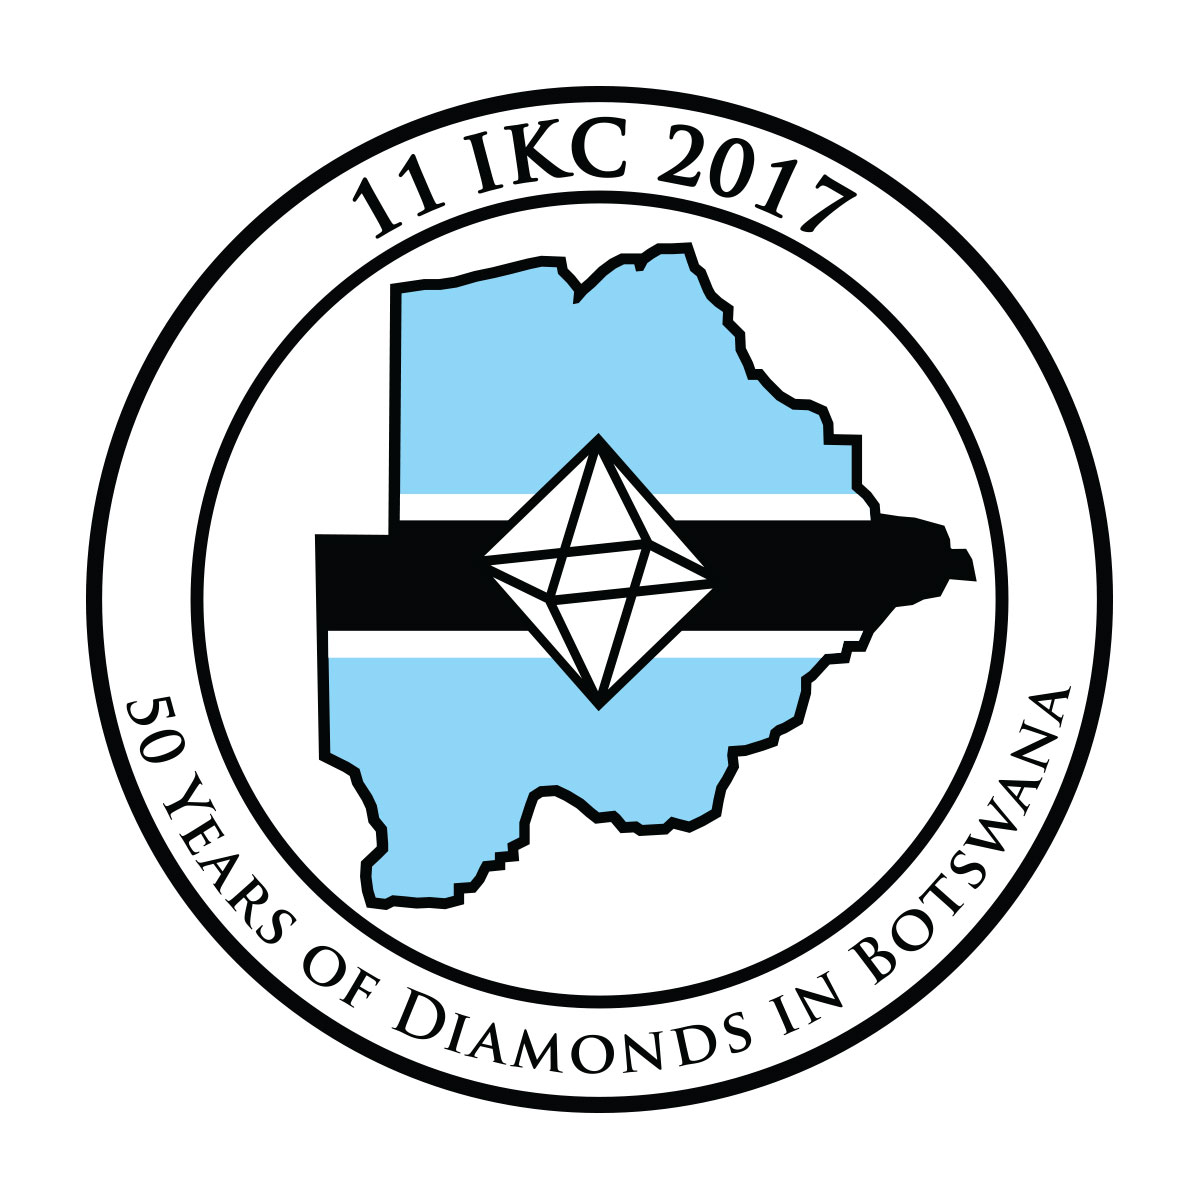 Logo: 11 IKC 2017 - 50 years of diamonds in Botswana